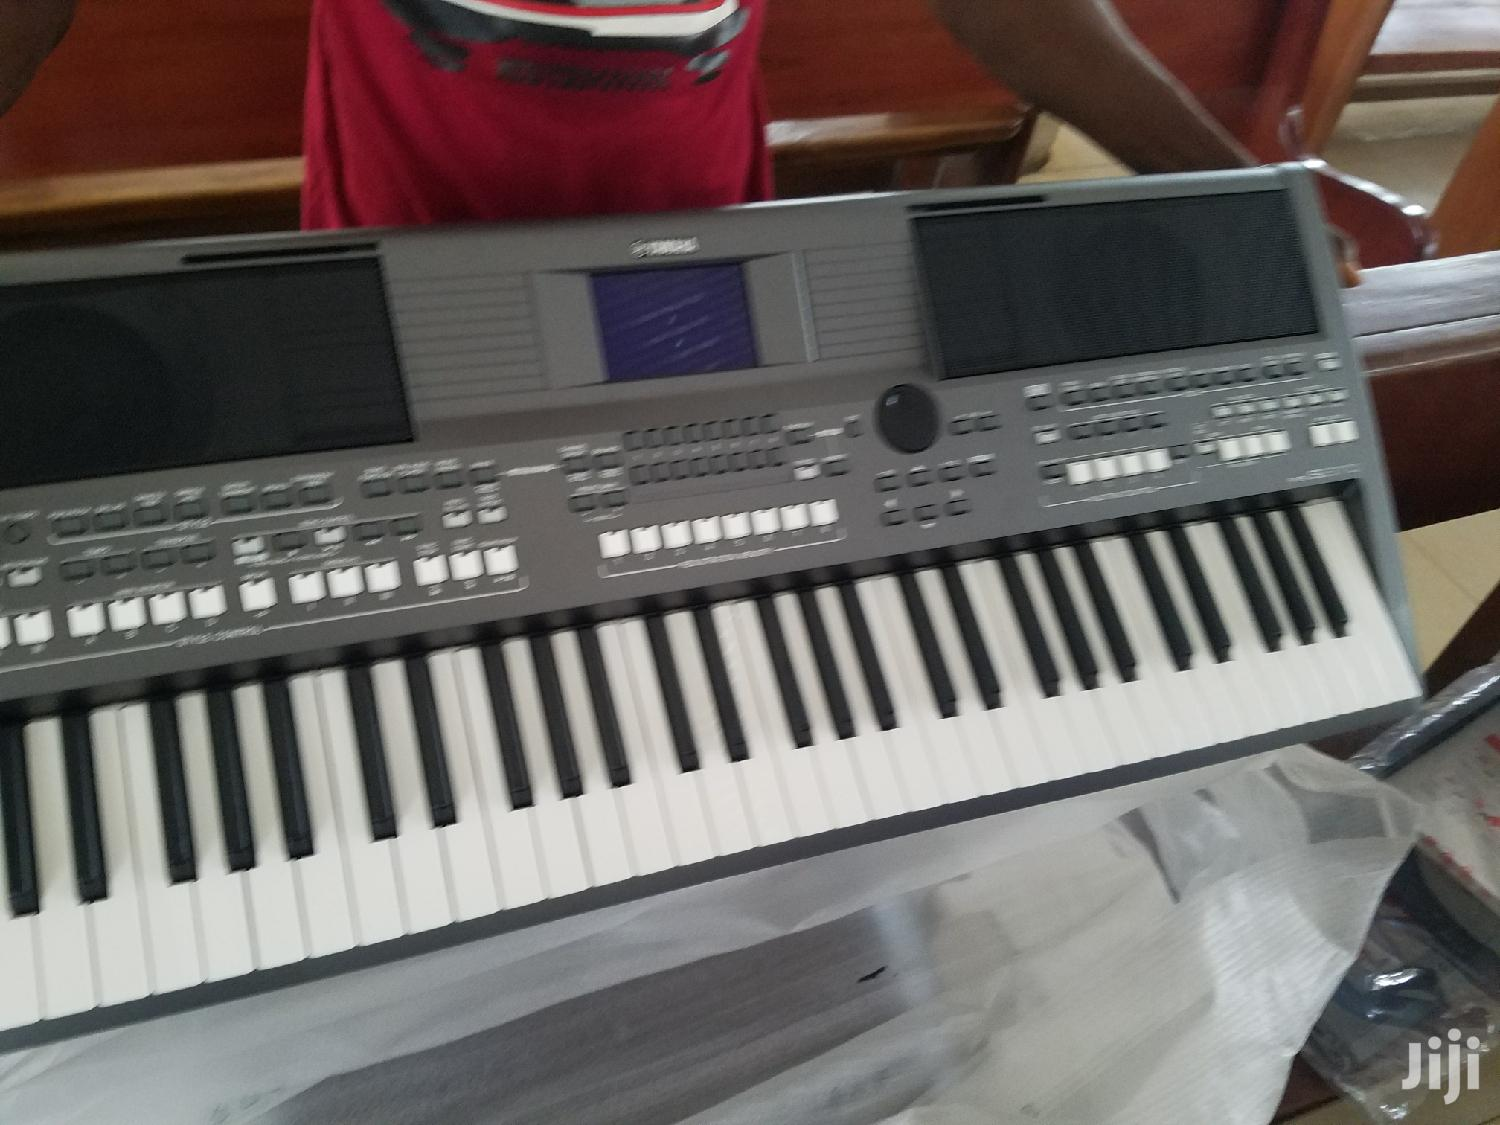 PSR S670 Workstation Arranger Yamaha | Musical Instruments & Gear for sale in Ga West Municipal, Greater Accra, Ghana